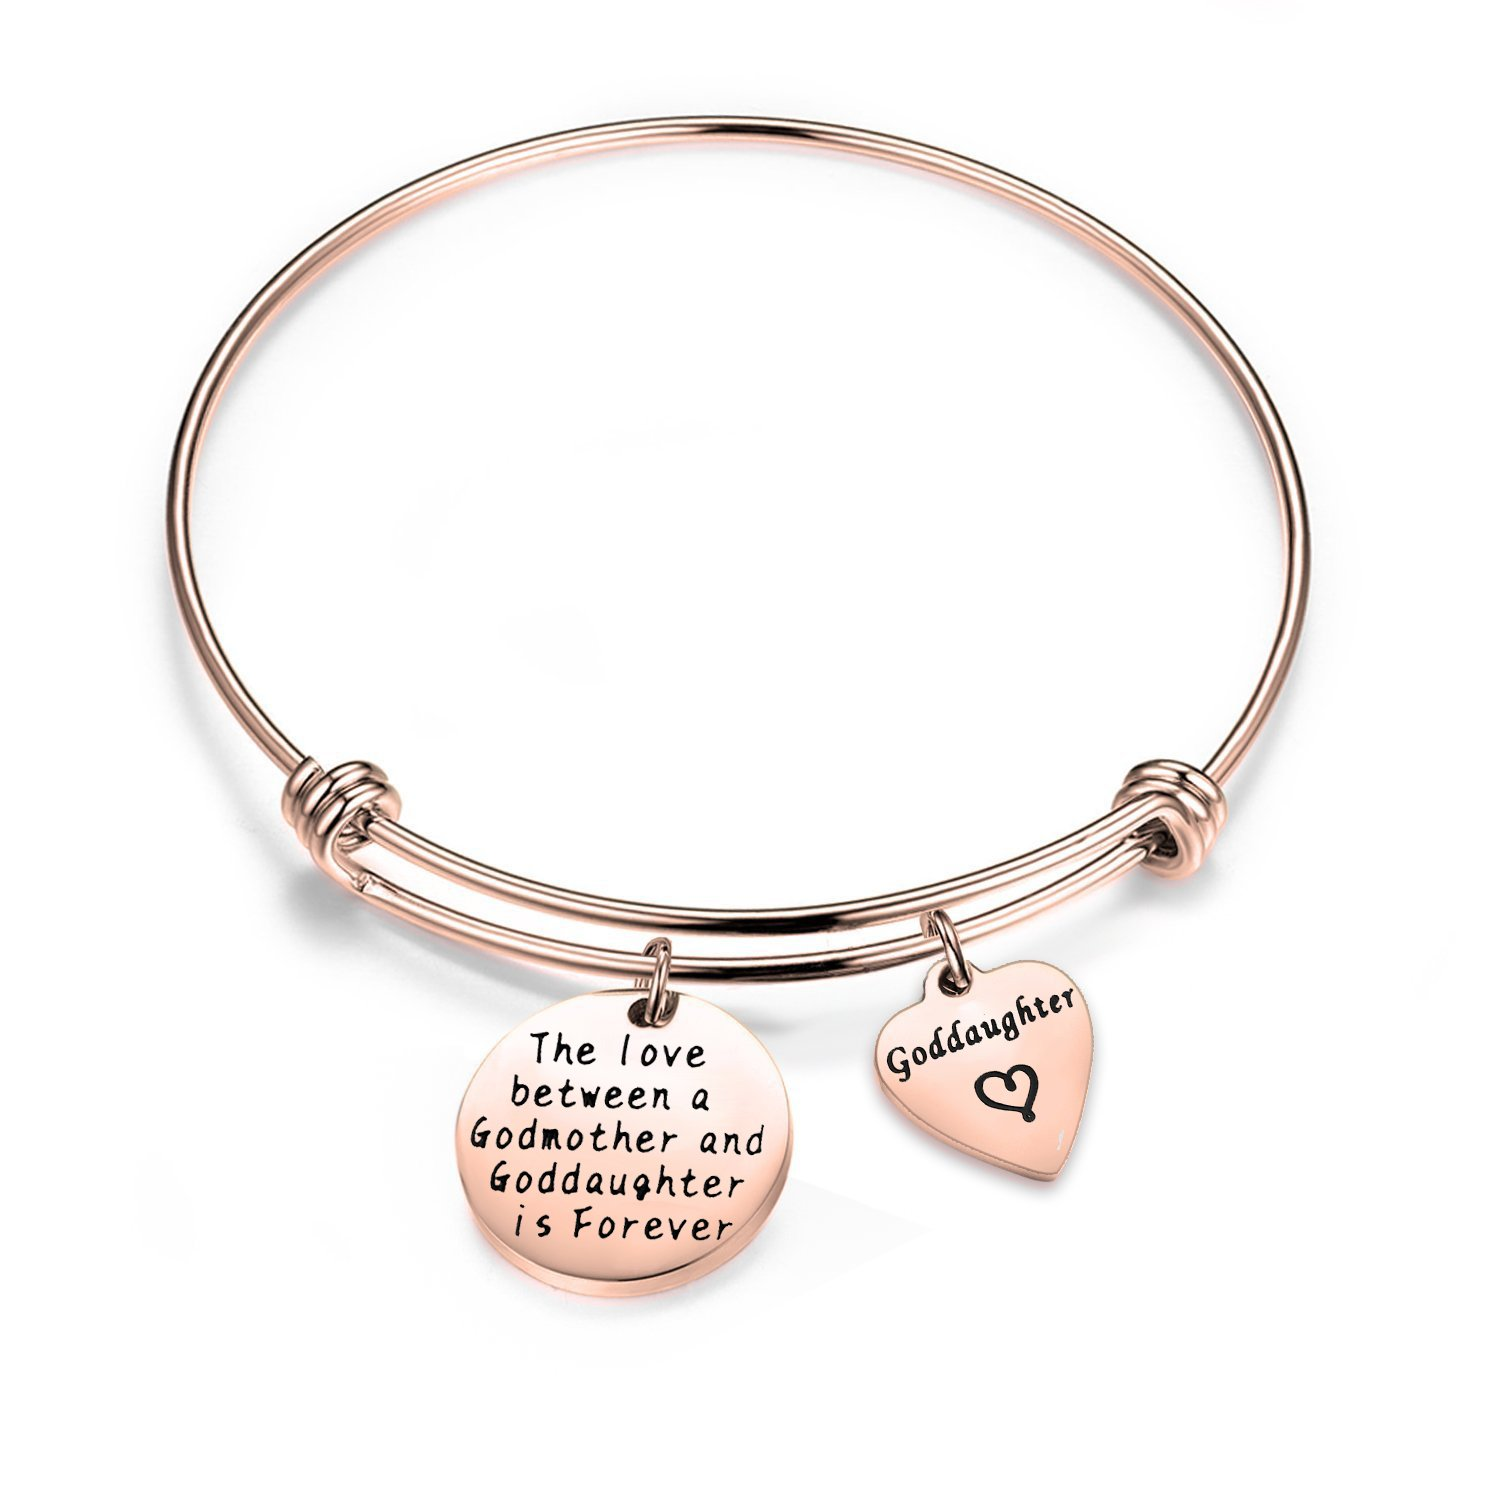 SEIRAA Goddaughter Gift The Love Between a Godmother and Goddaughter is Forever Bracelet First Communion Gift B077RVTSS1_US